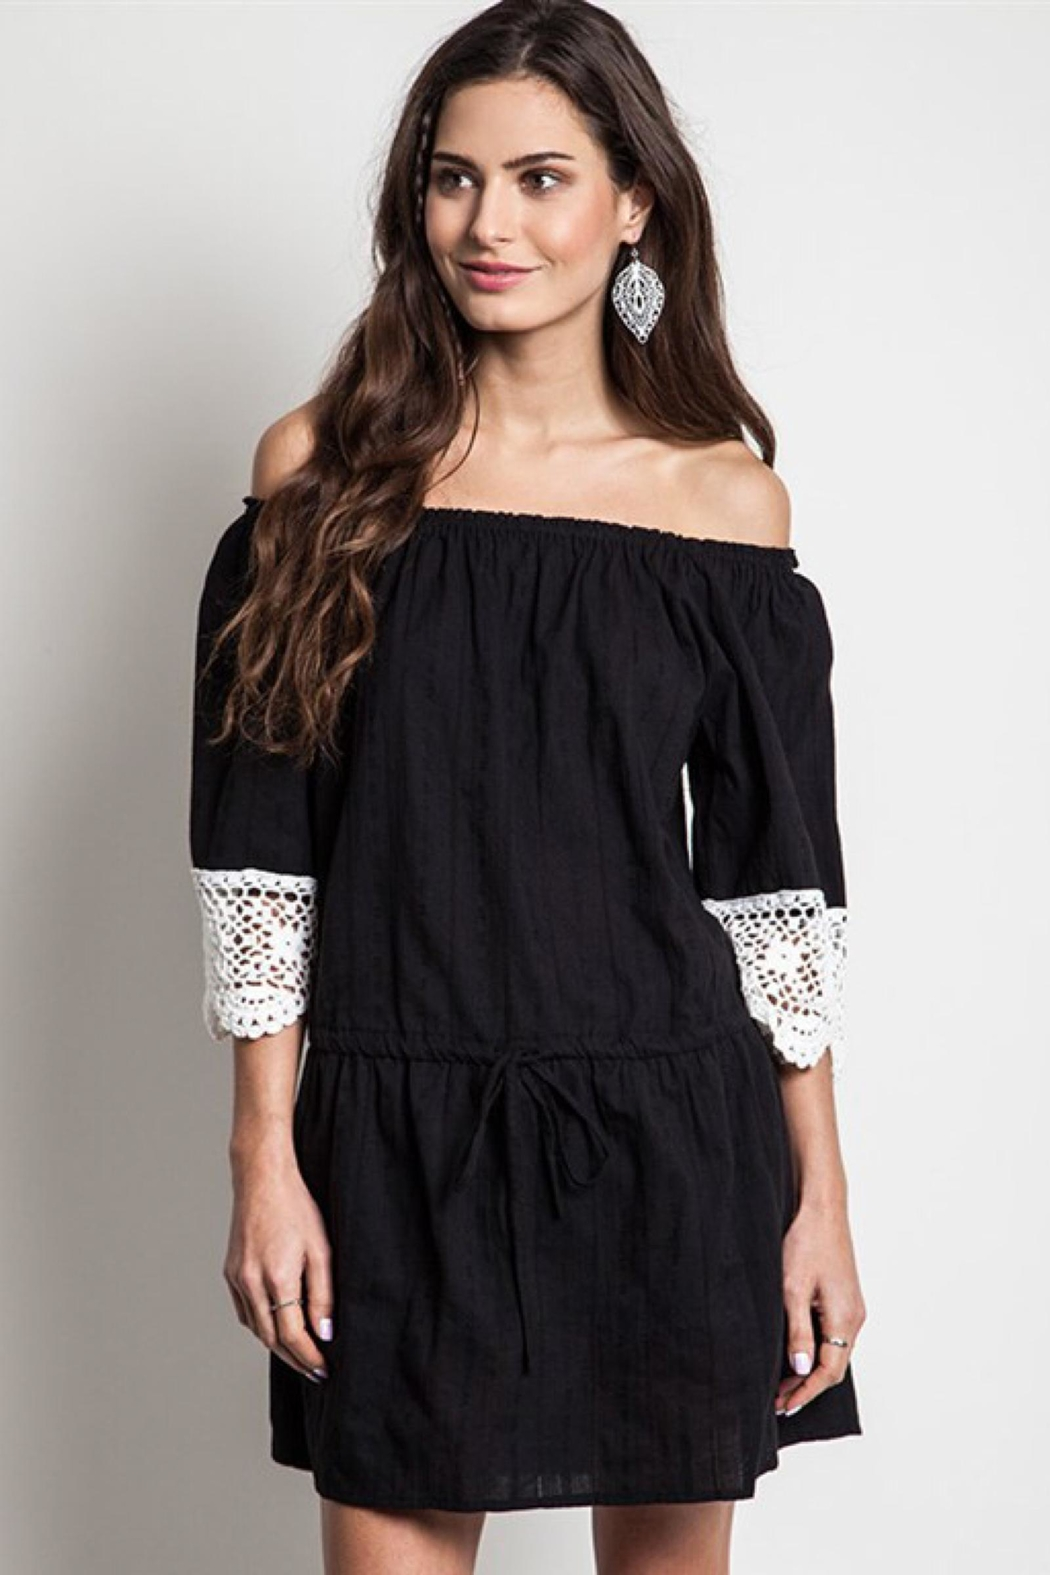 People Outfitter Black Crochet Dress - Main Image